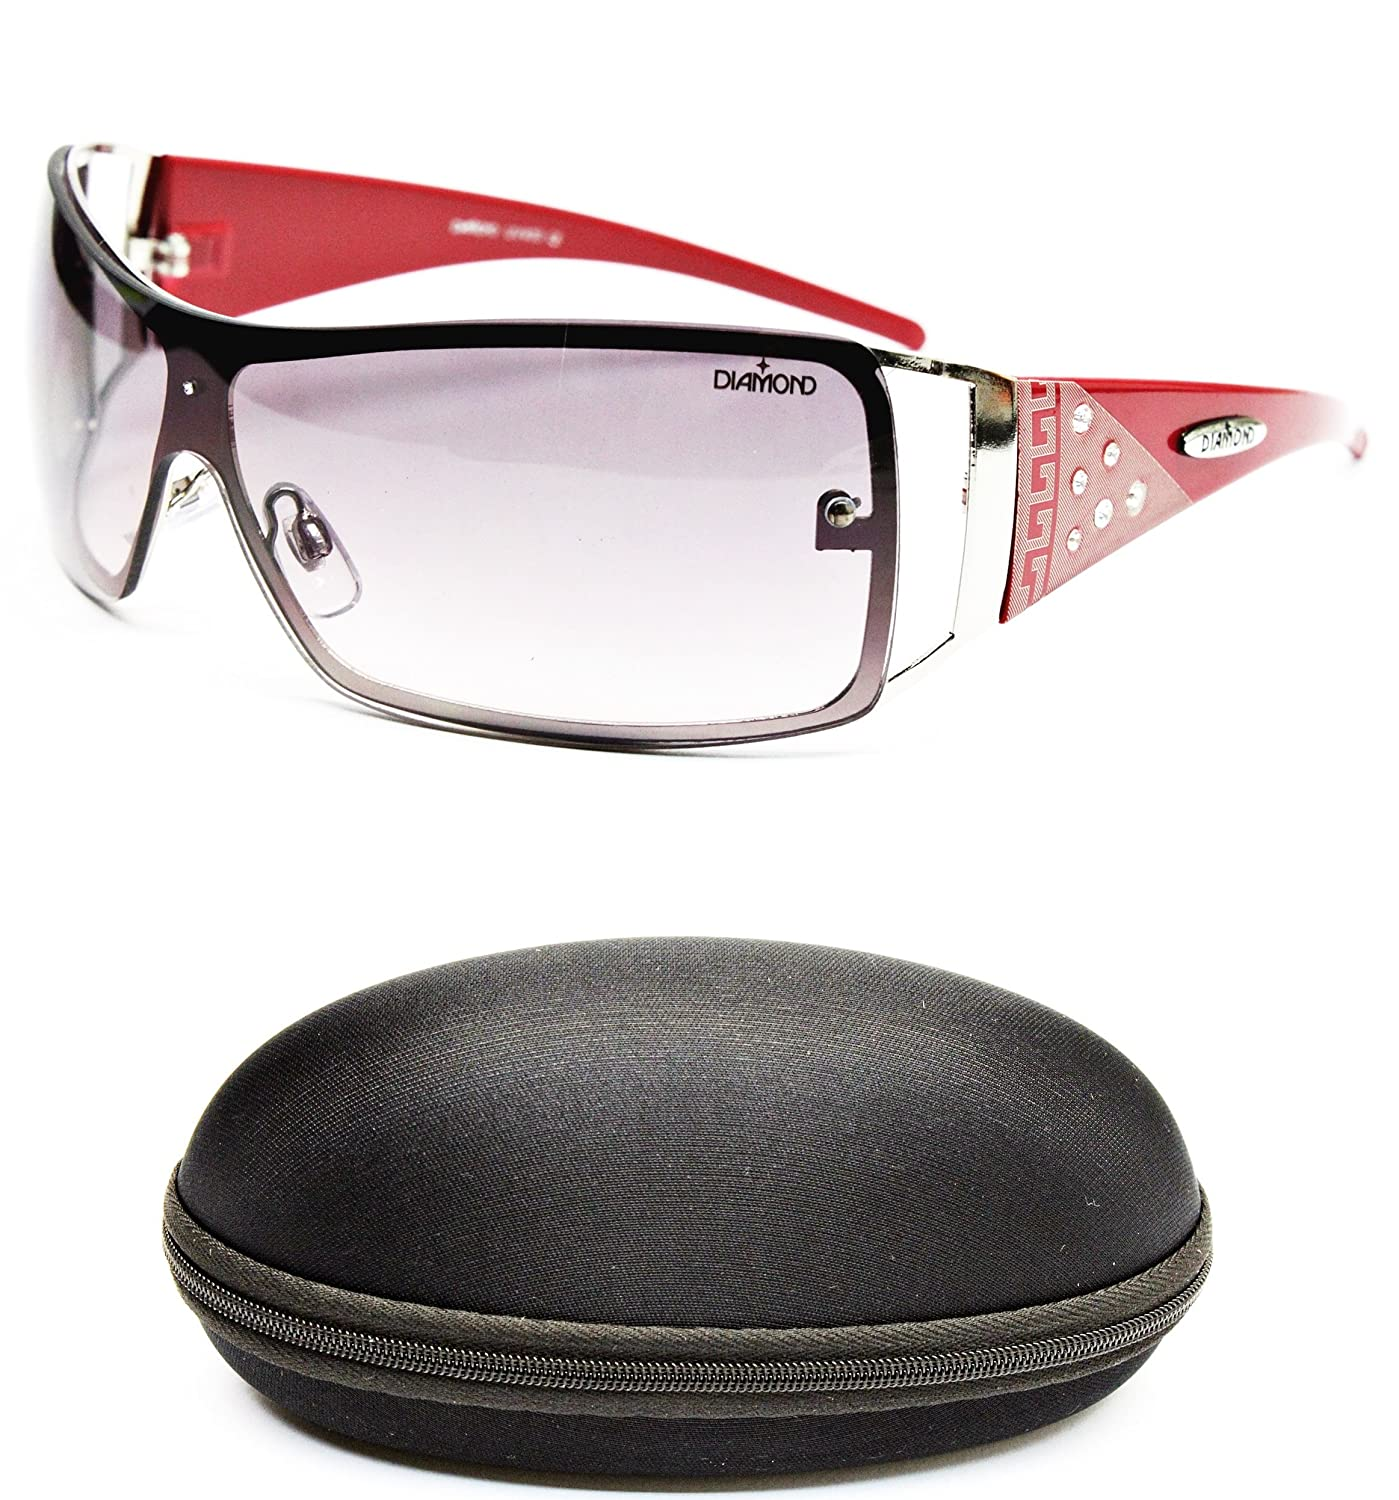 D08-cc Diamond Eyewear Shield Sunglasses